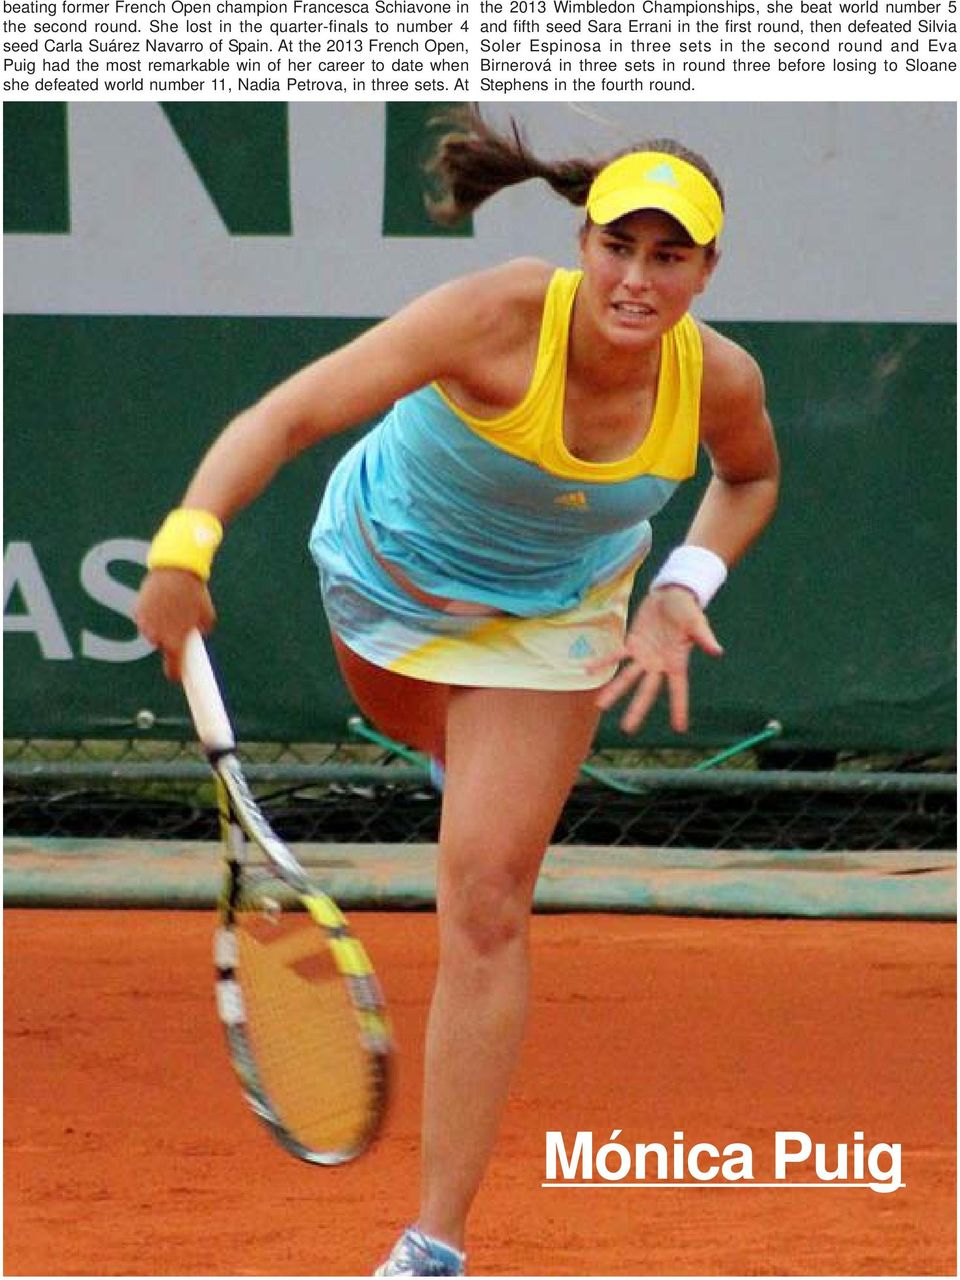 At the 2013 French Open, Puig had the most remarkable win of her career to date when she defeated world number 11, Nadia Petrova, in three sets.